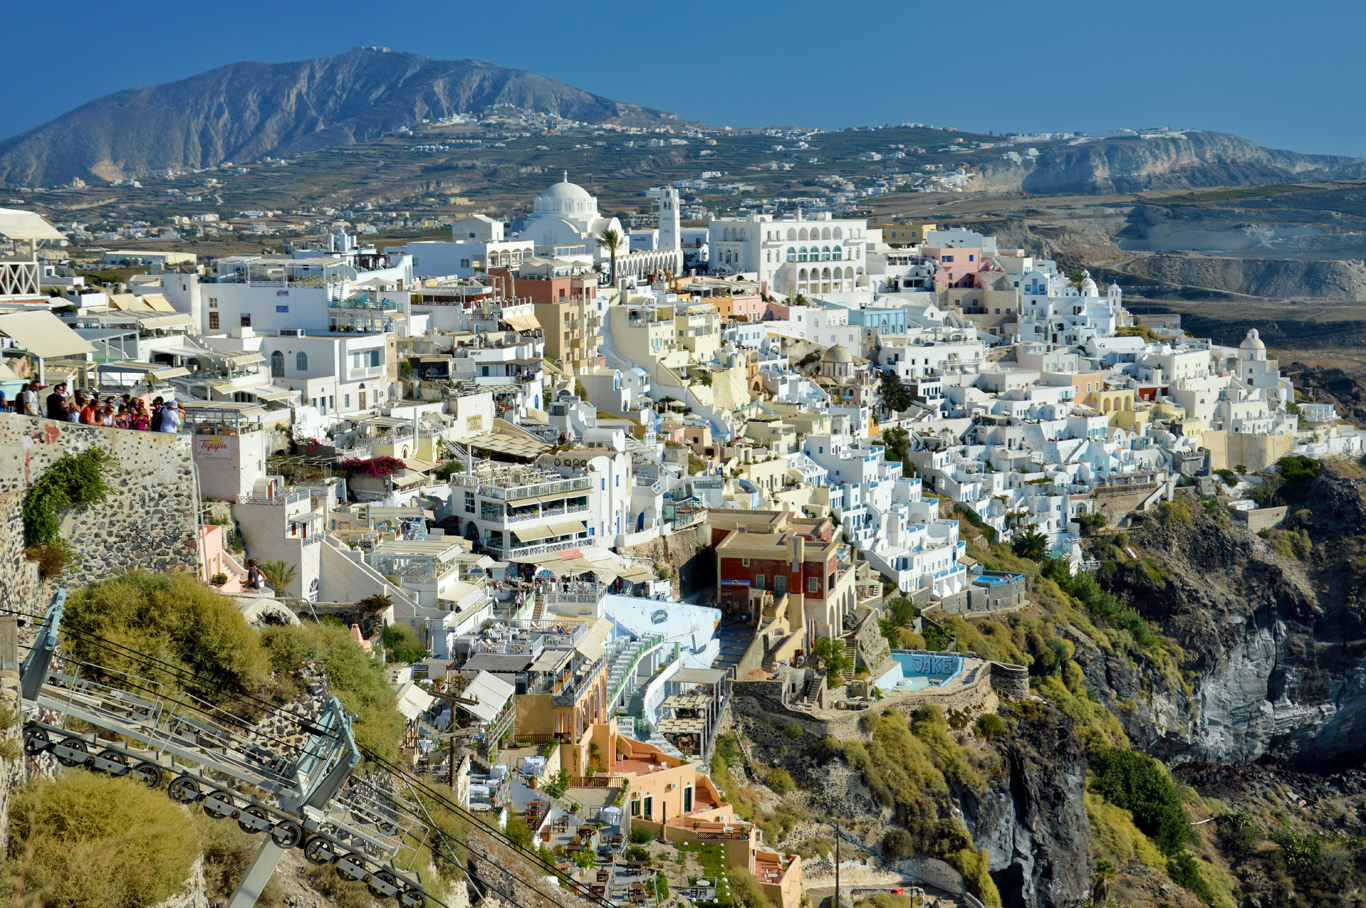 Overview of Fira